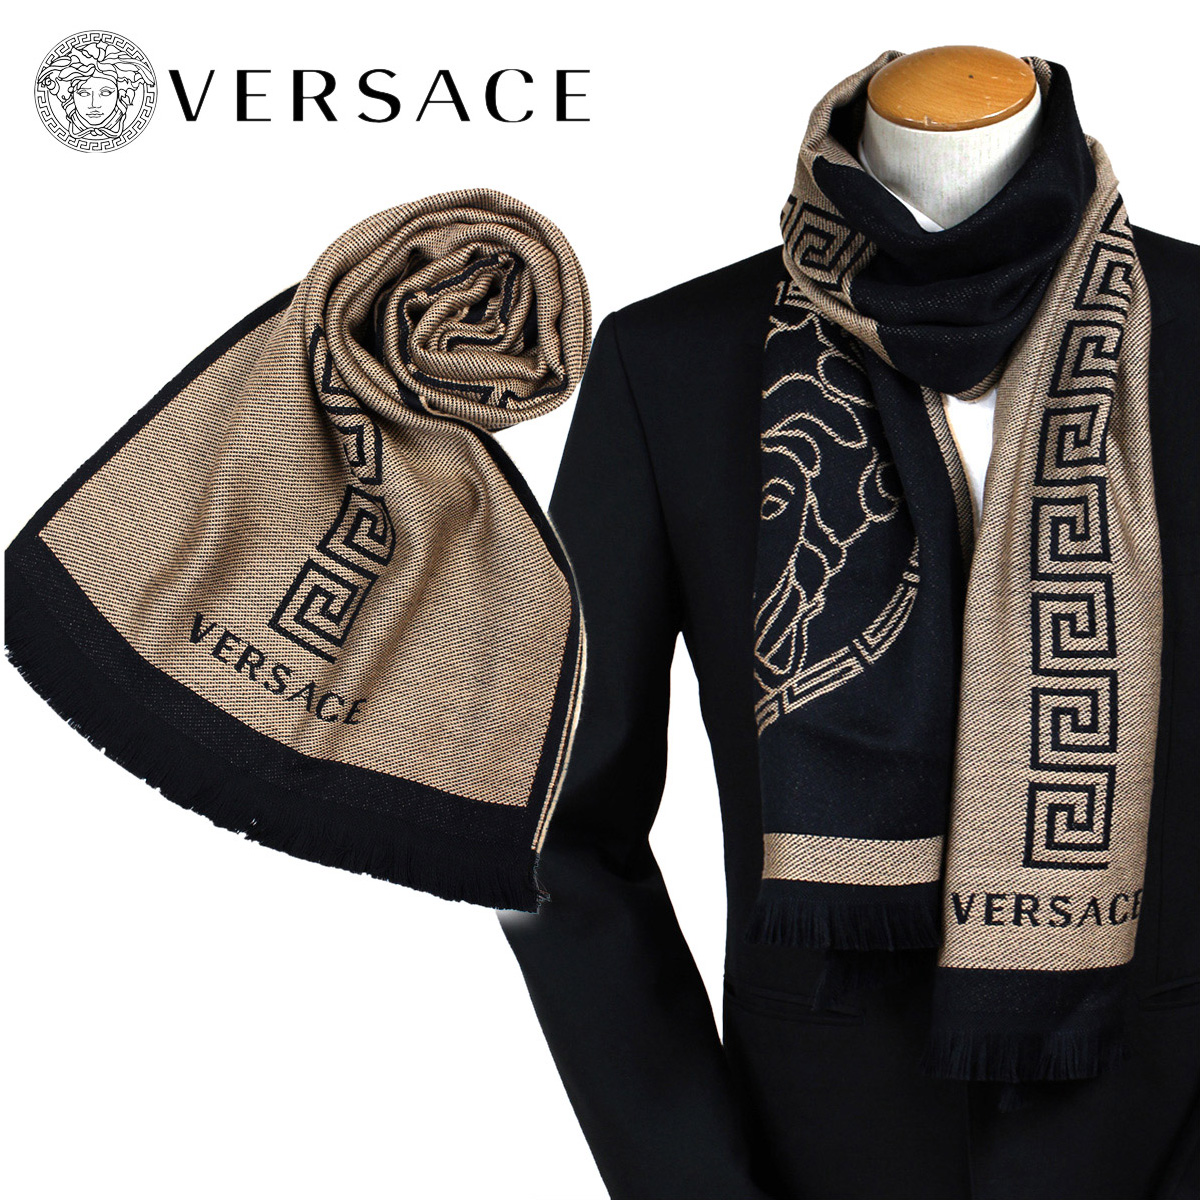 046f6a6482d ... of the older brother to have established a company together, and サント  acts as the president of Gianni Versace company from those days to the  present.